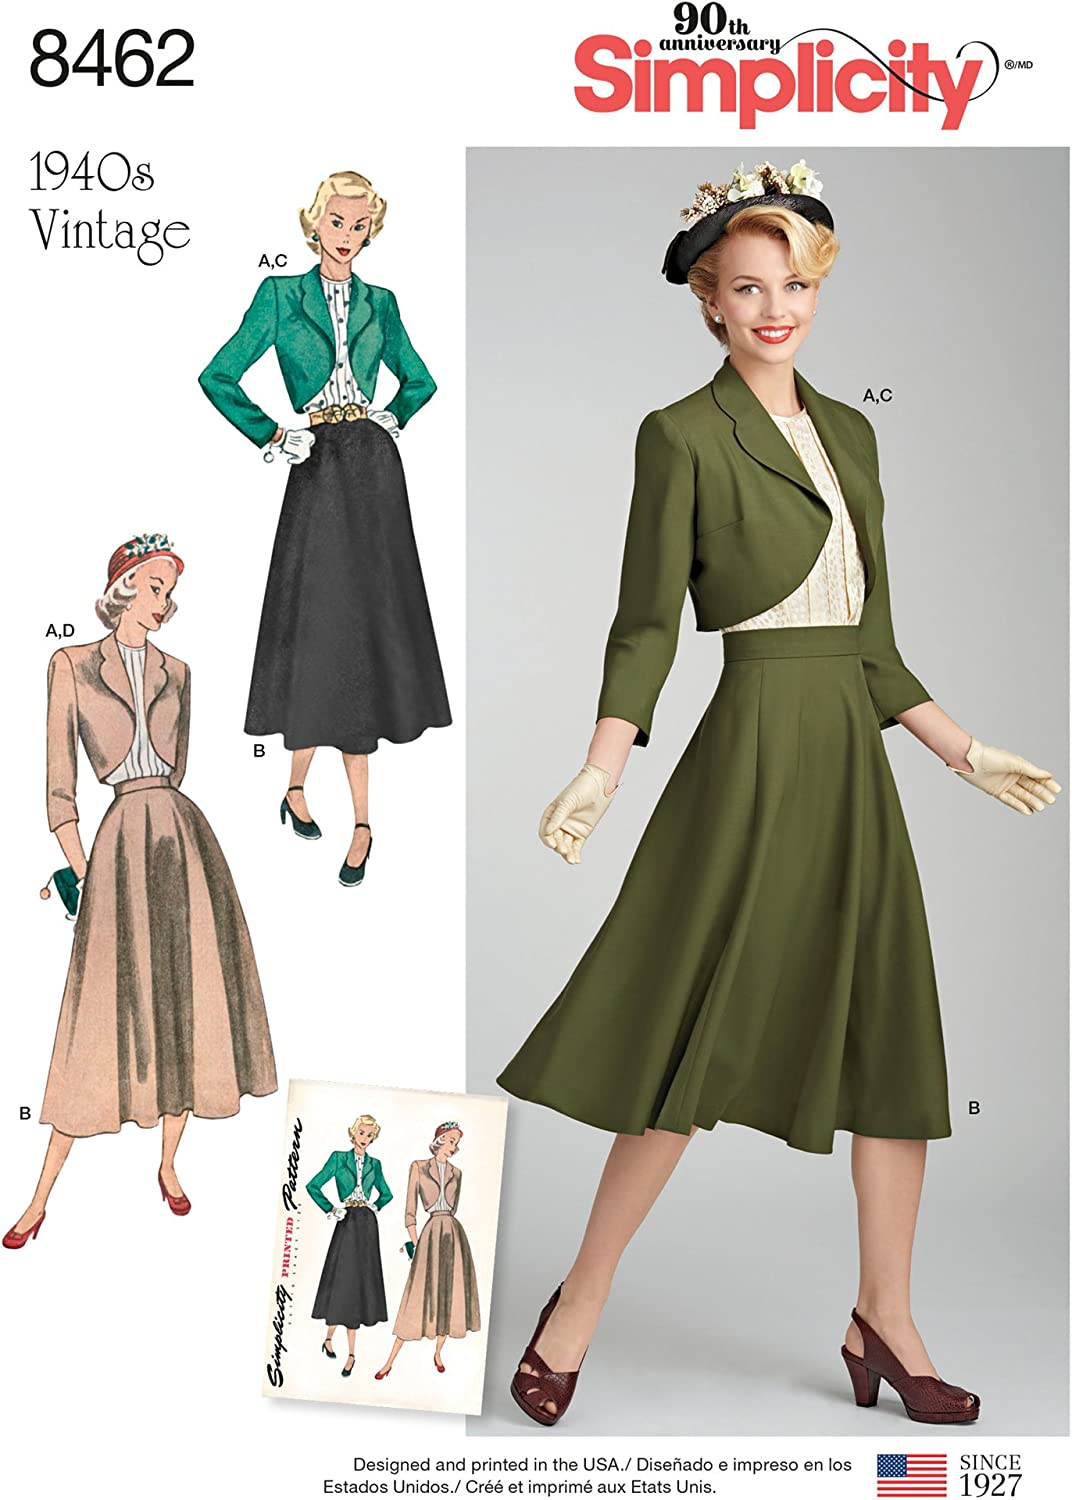 Simplicity US8462U5 1940s Fashion Womens Vintage Blouse Bolero and Skirt Sewing Patterns Sizes 16-24